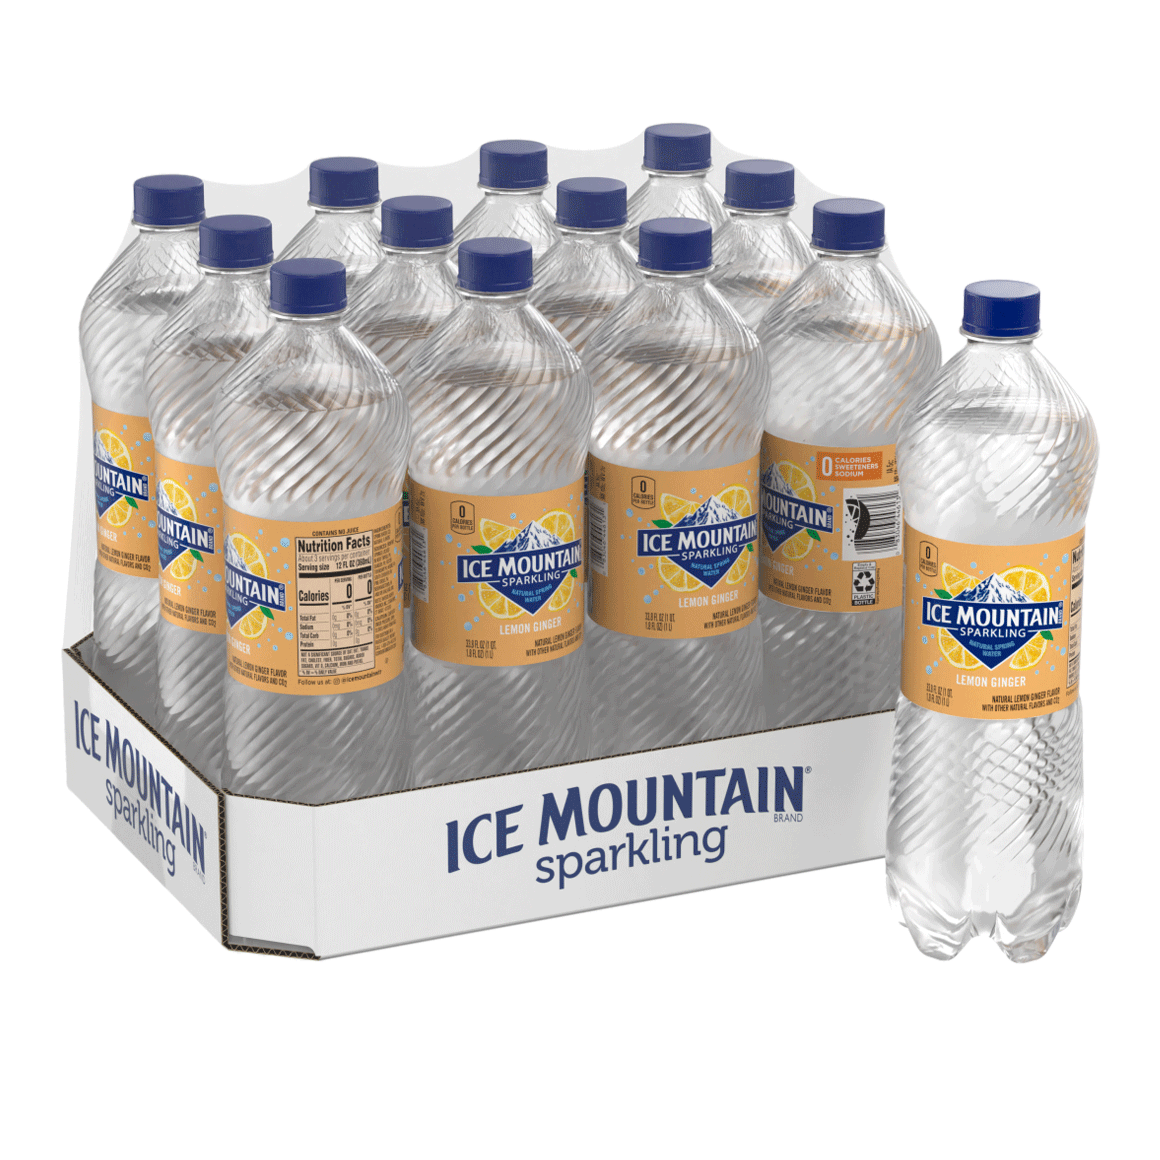 Ice Mountain® Brand Sparkling 100% Natural Spring Water - Lemon Ginger